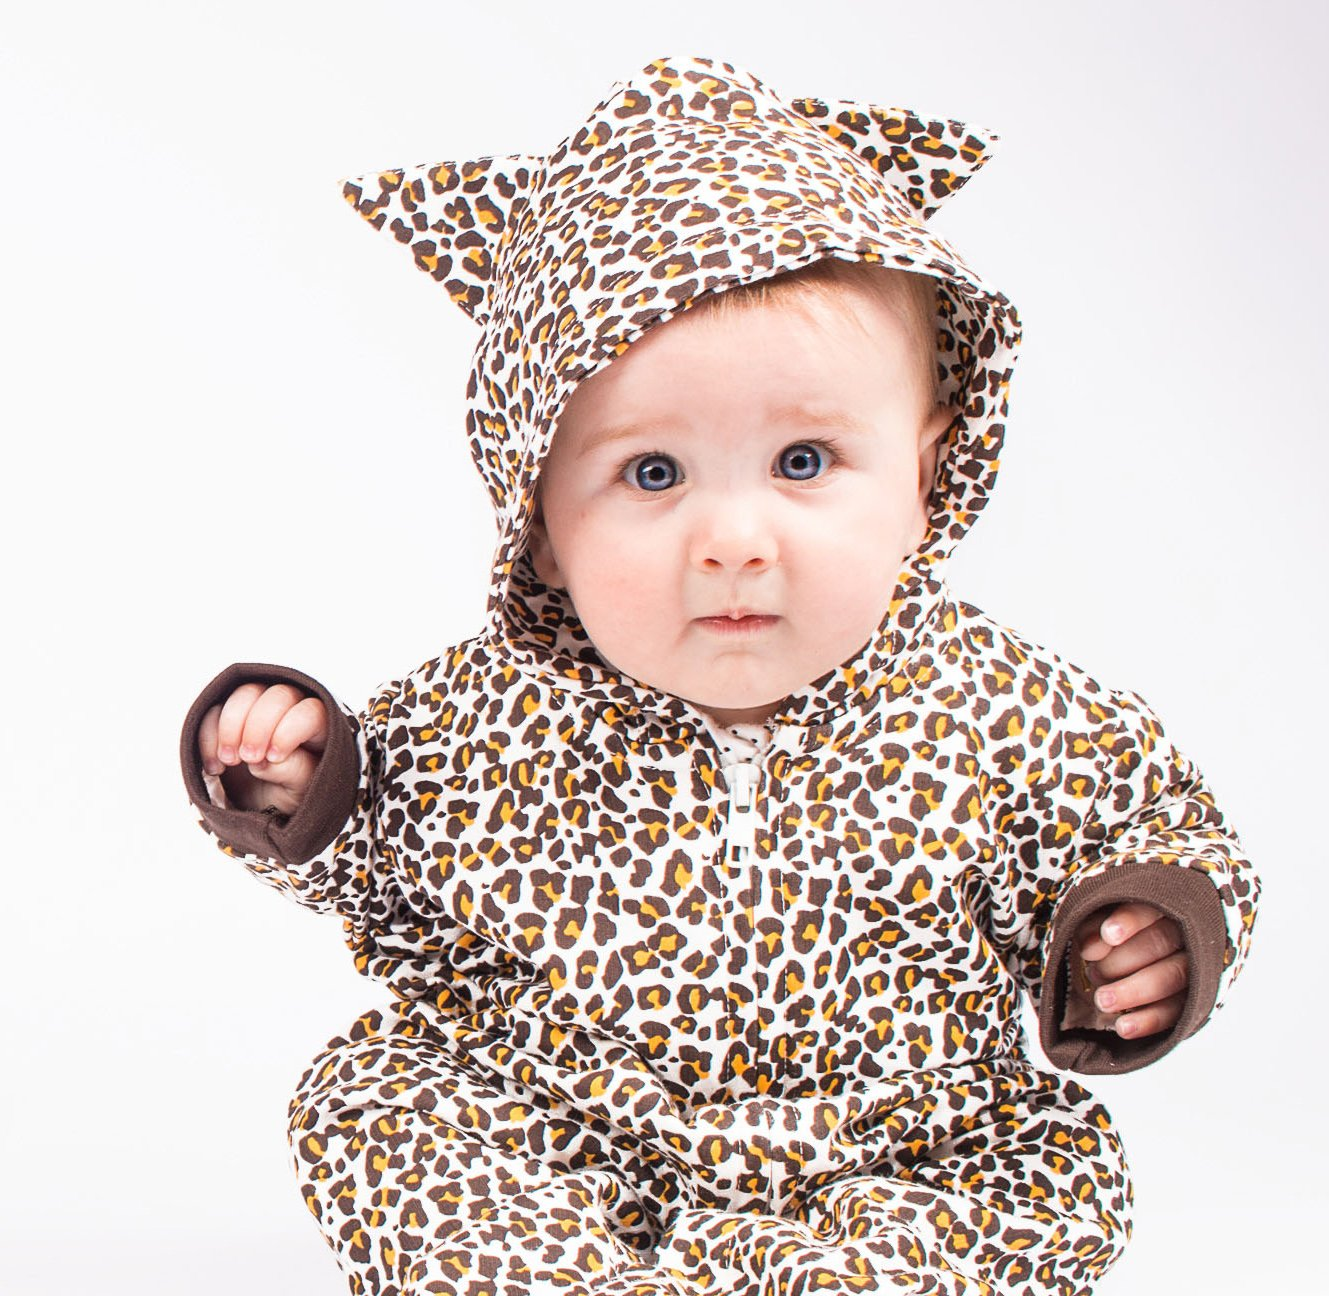 - BABY MOOS UK 0-3 Months Baby Shower Newborn Costume Clothes Boy or Girl Leopard Baby Romper Outfit for Boys or Girls Cute Animal Print Hooded Zip Onesie Suit or 1st Birthday Gift  